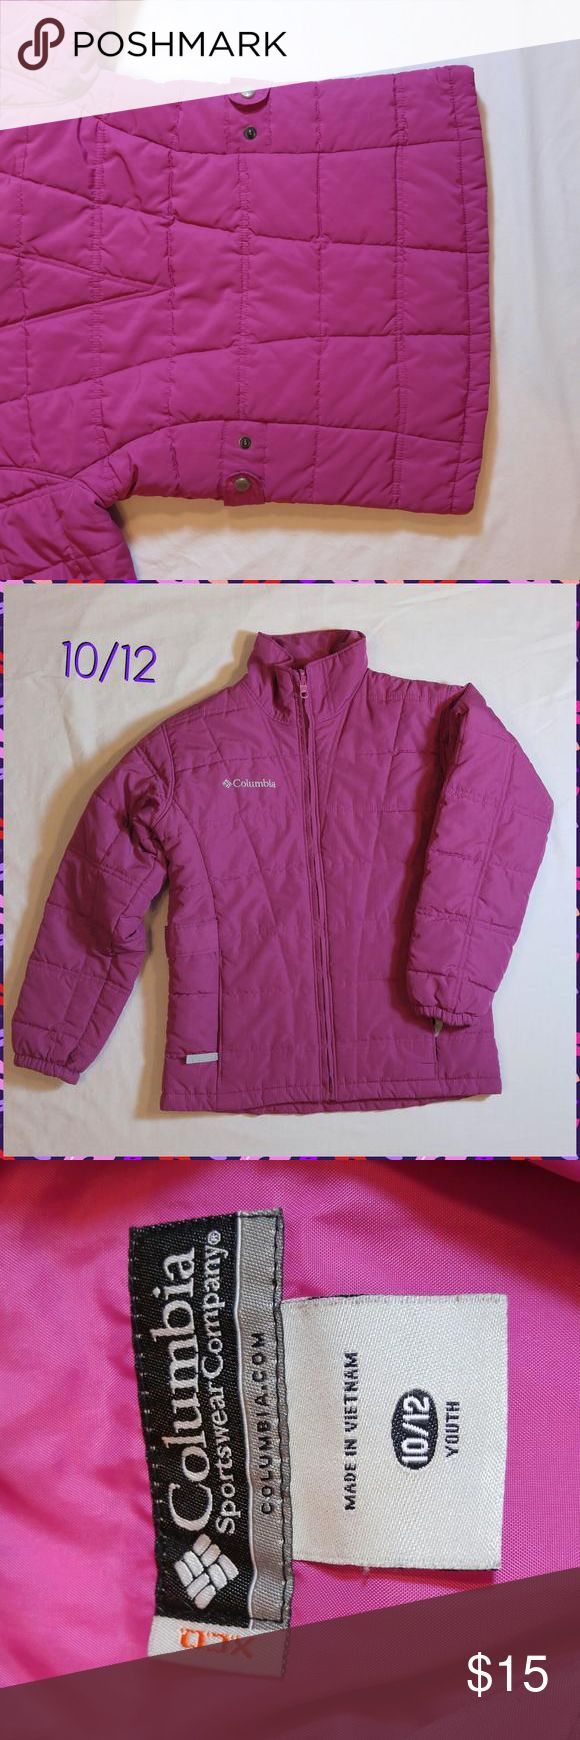 Columbia jacket Quilted jacket in hot pink by Columbia.  Jacket is a medium weight but could winter, snaps on size to cinch for better fit, zipper front closure.  Sized 10/12, smoke free home, pet friendly. Columbia Dresses